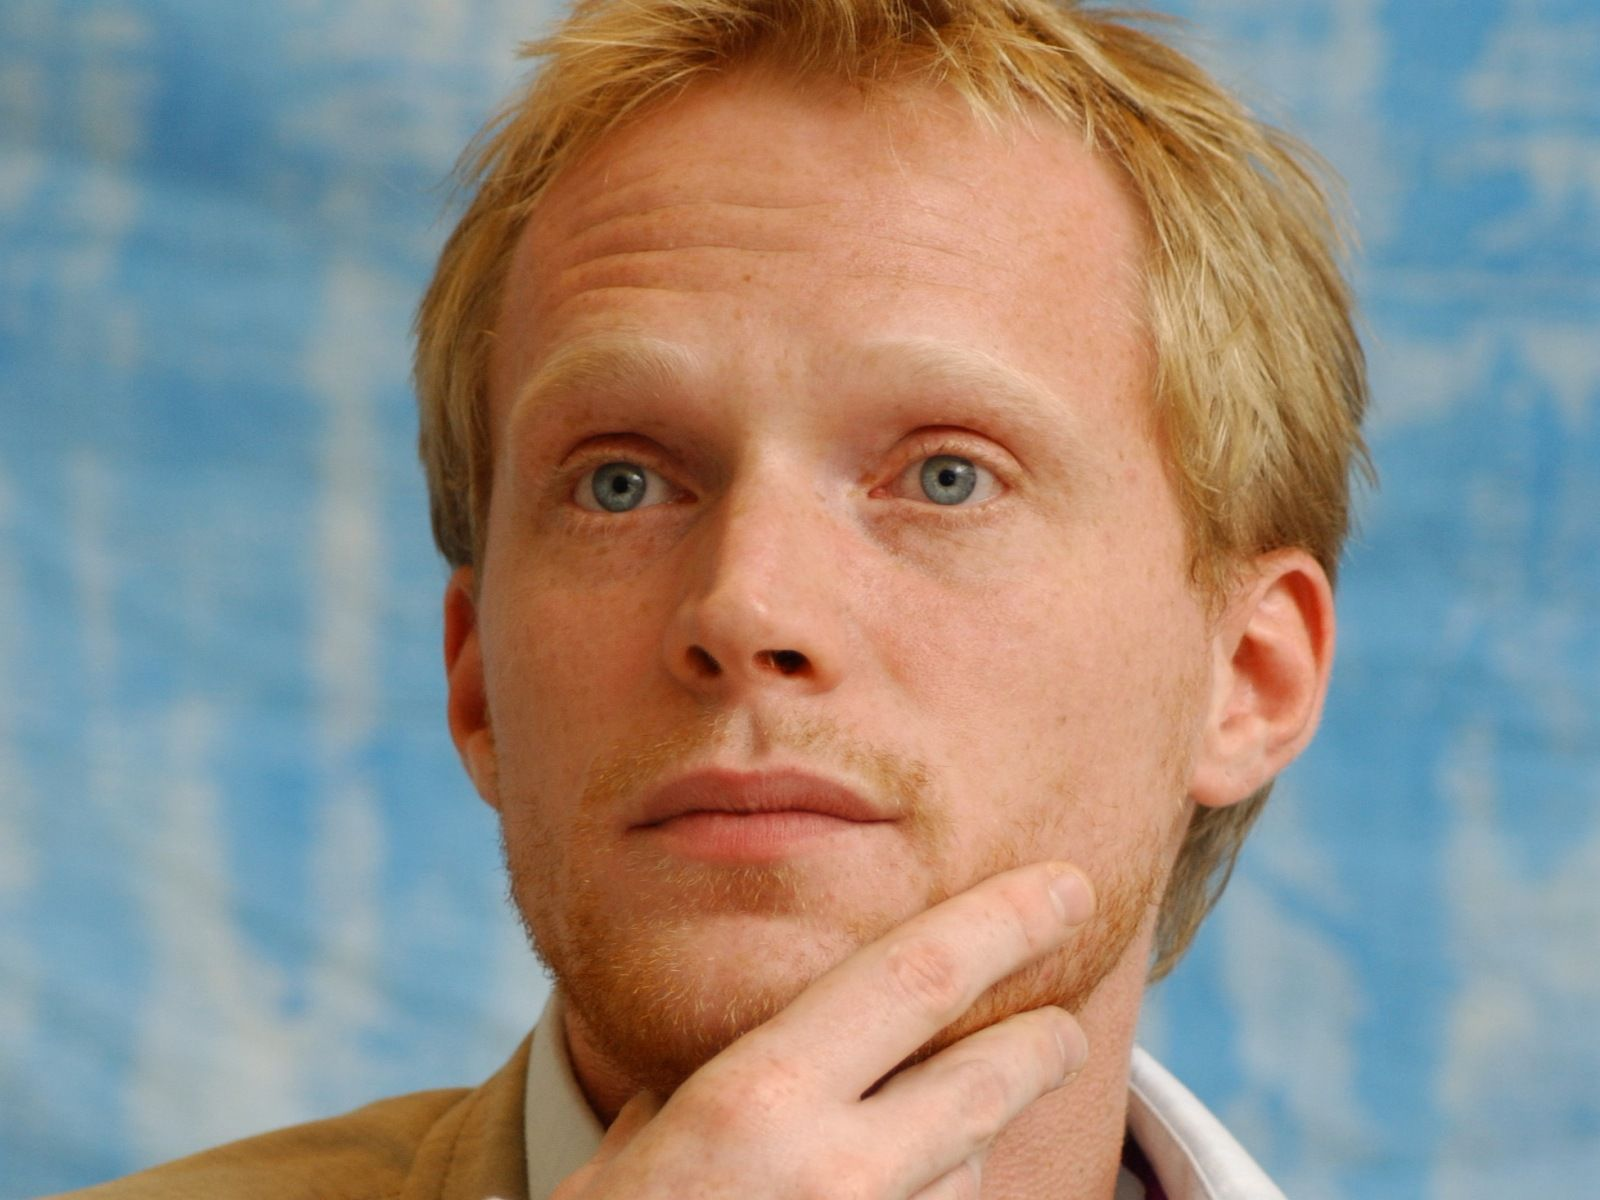 Pin On Paul Bettany